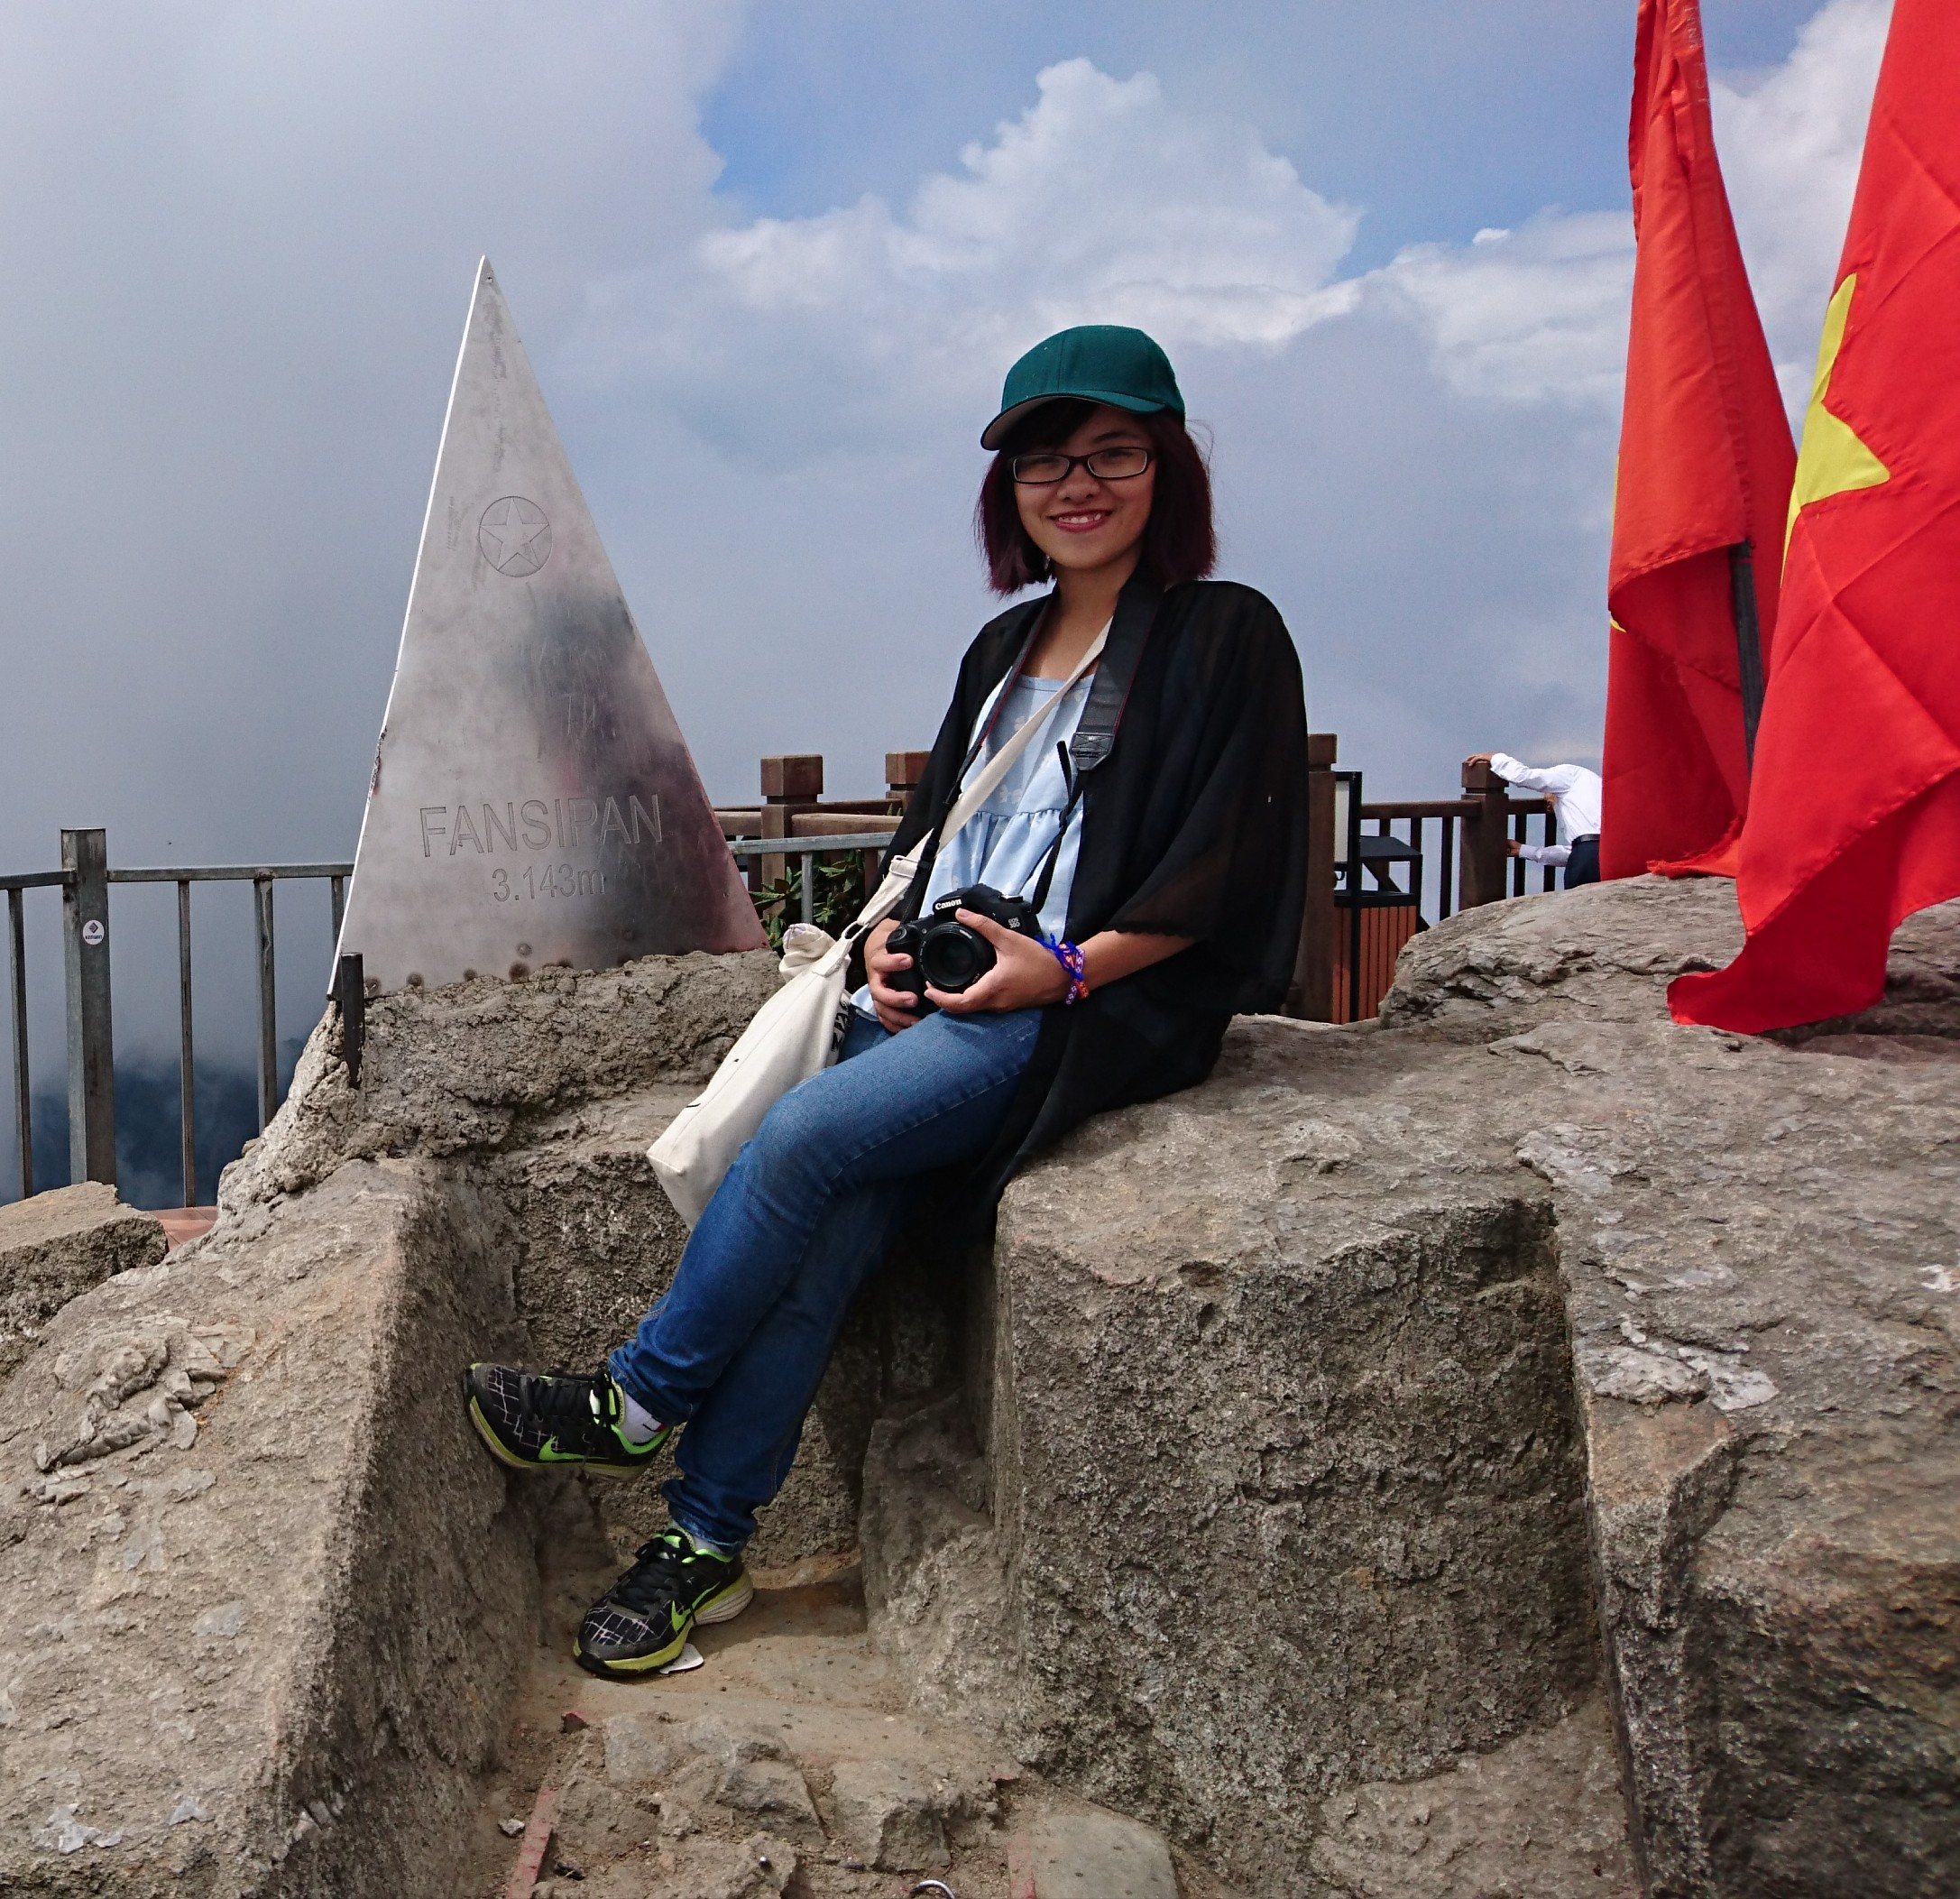 Climbing Fansipan Mountain for great cause - XUÂN